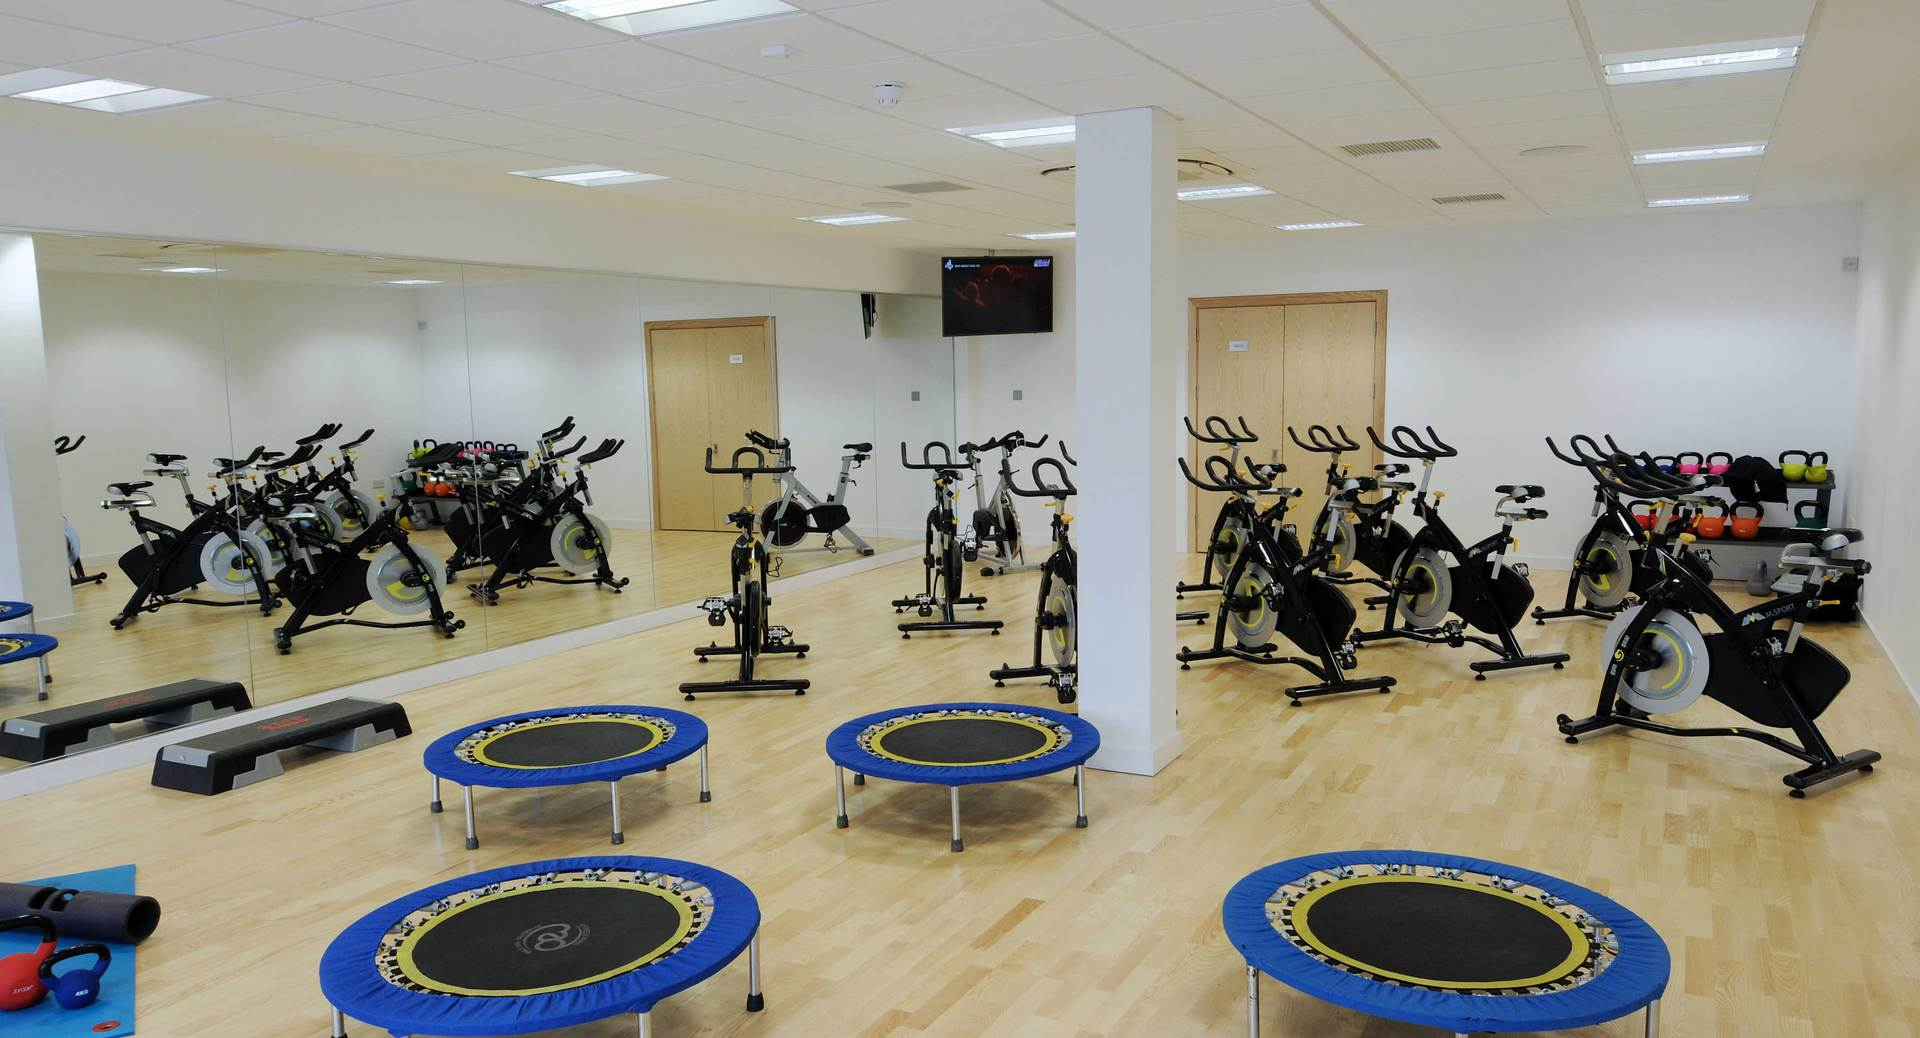 Our new Sport & Fitness facilities are up and running!